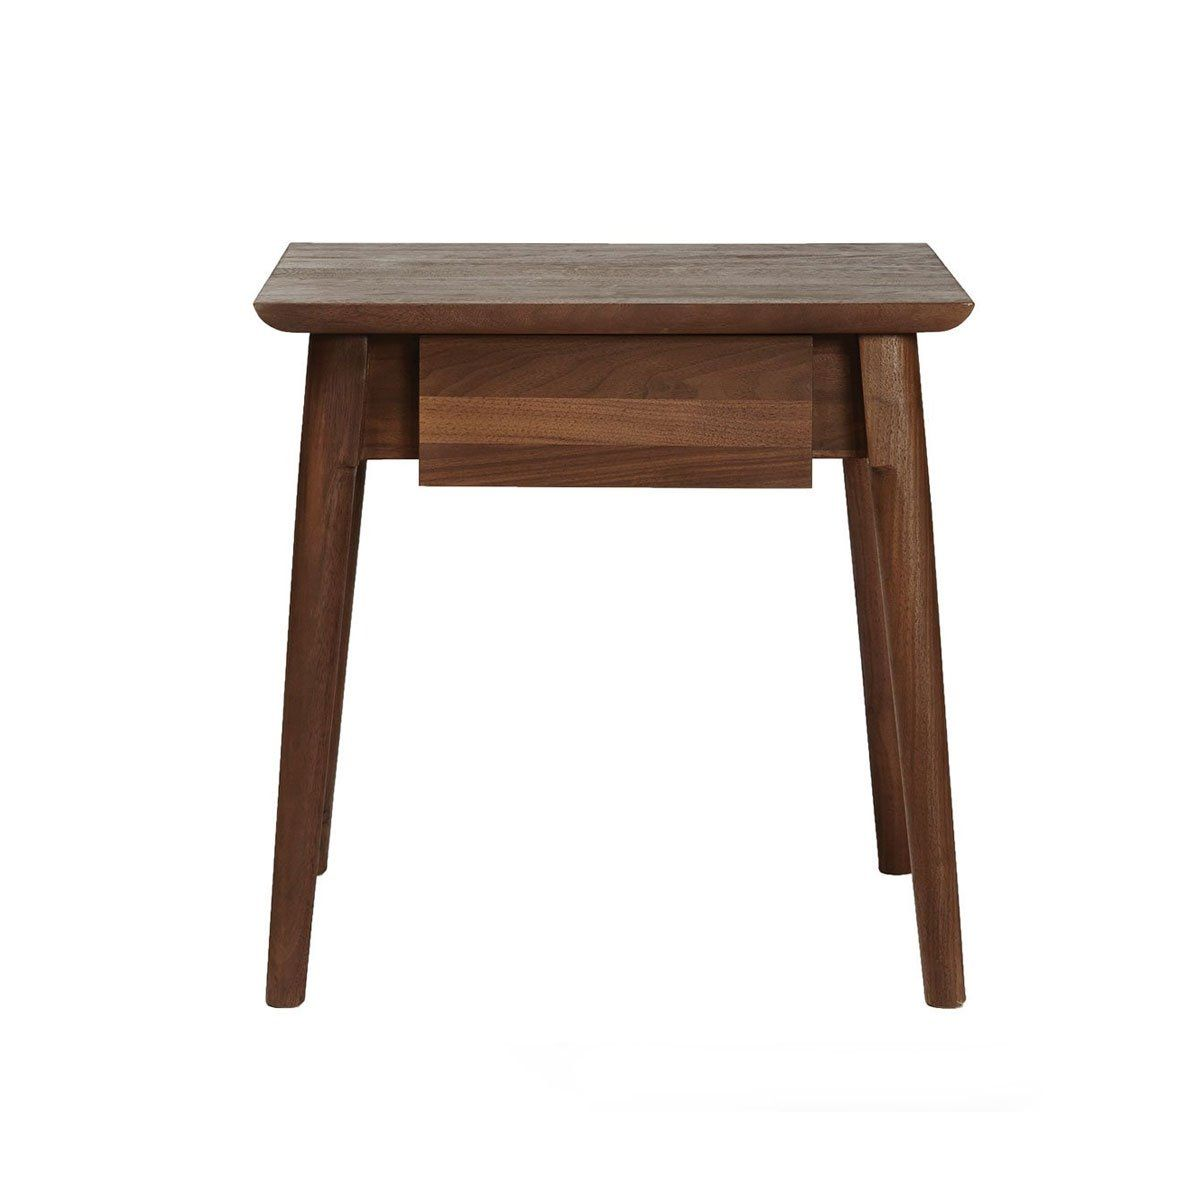 American Walnut Side Table With Drawer Danish Modern Drawers And - Walnut side table with drawer